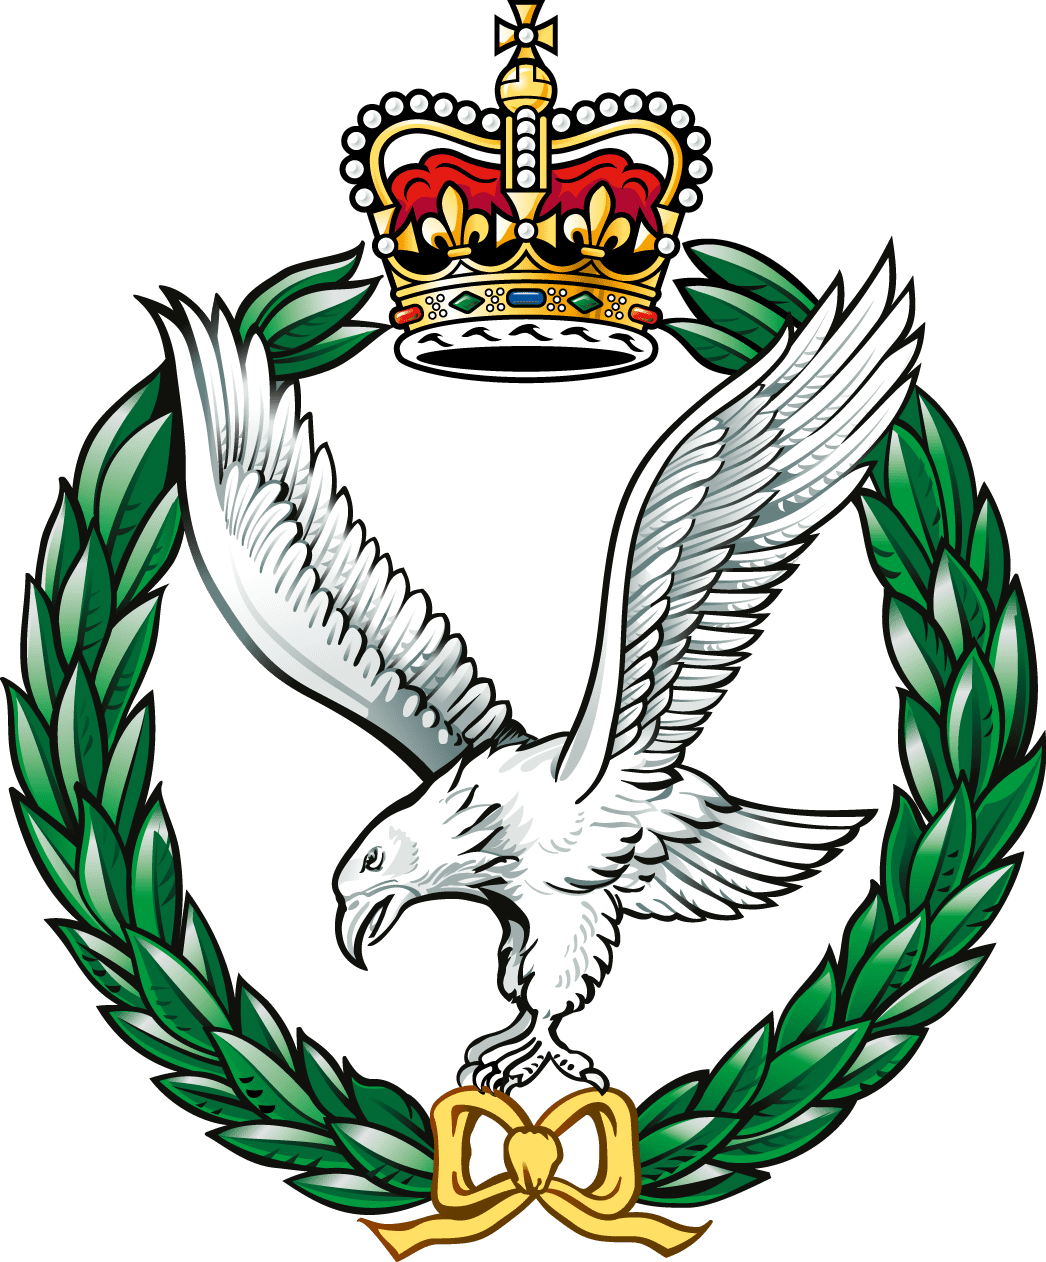 Challenge Coins Uk - Army Air Corps - Coins UK